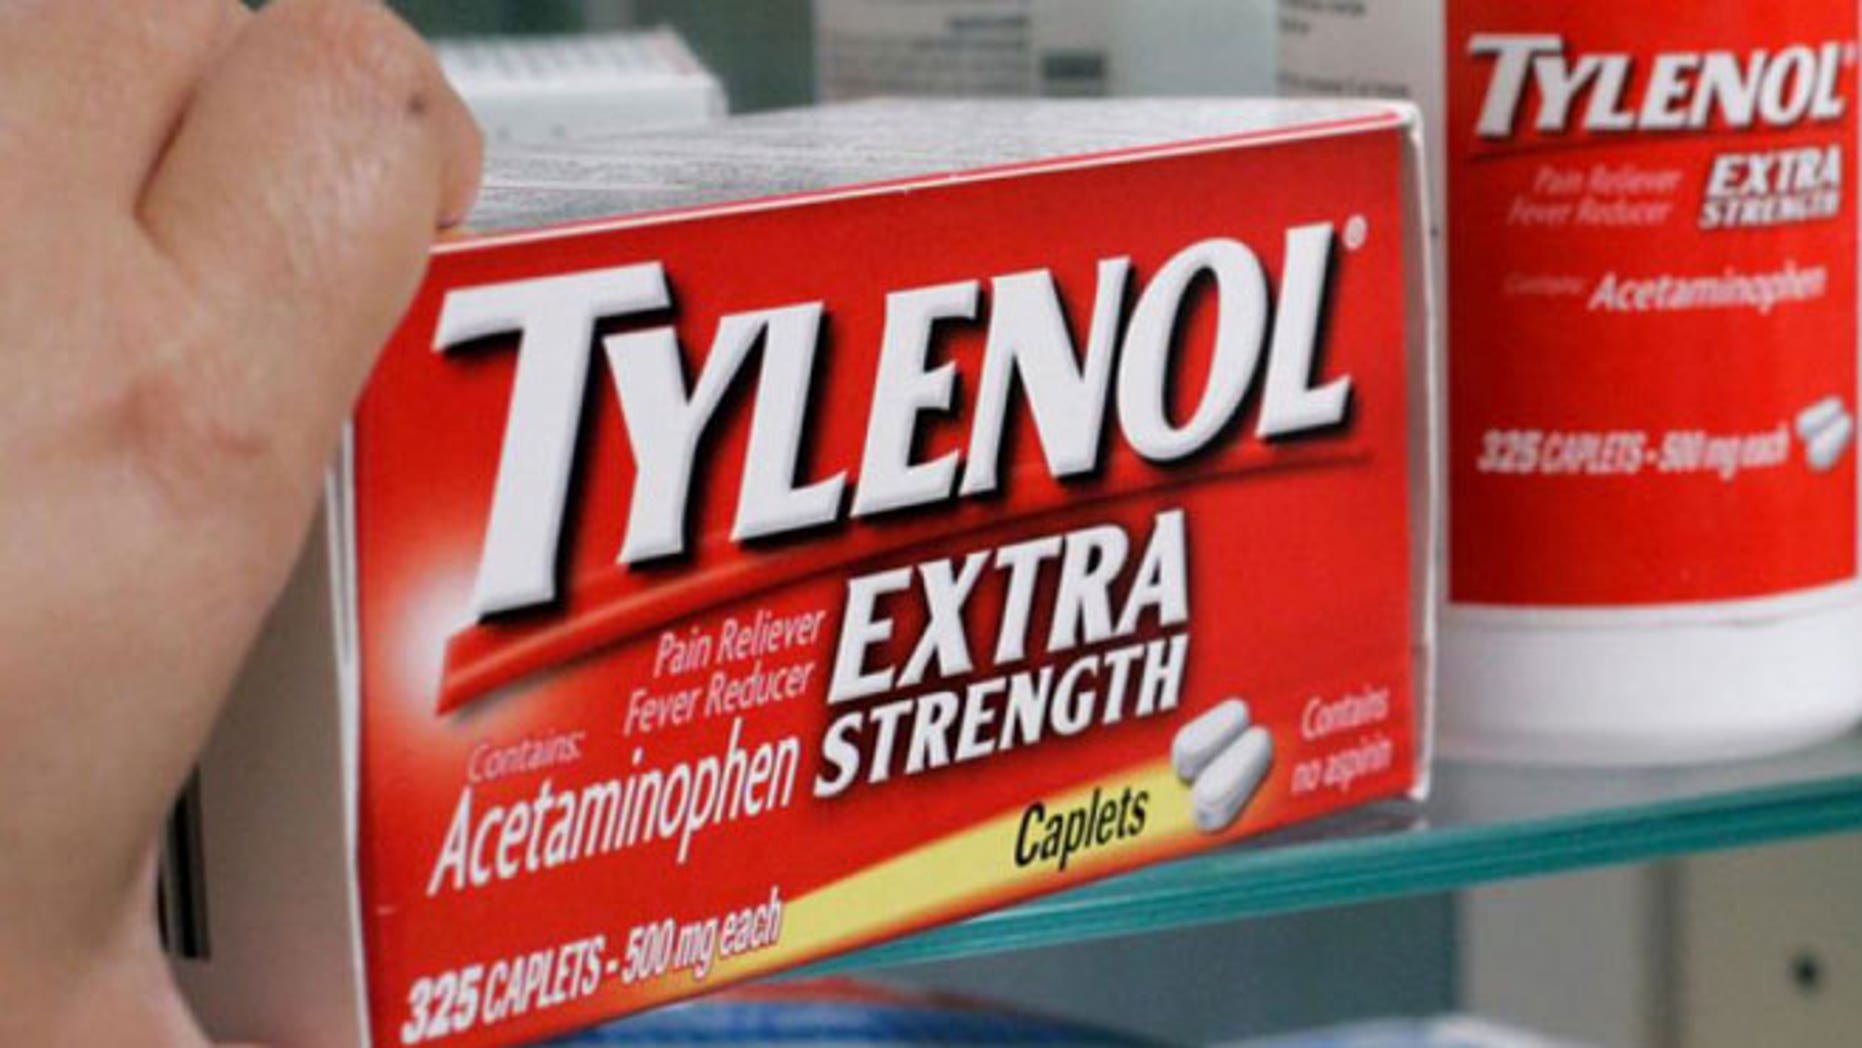 Advil vs. Tylenol: Which to use and when